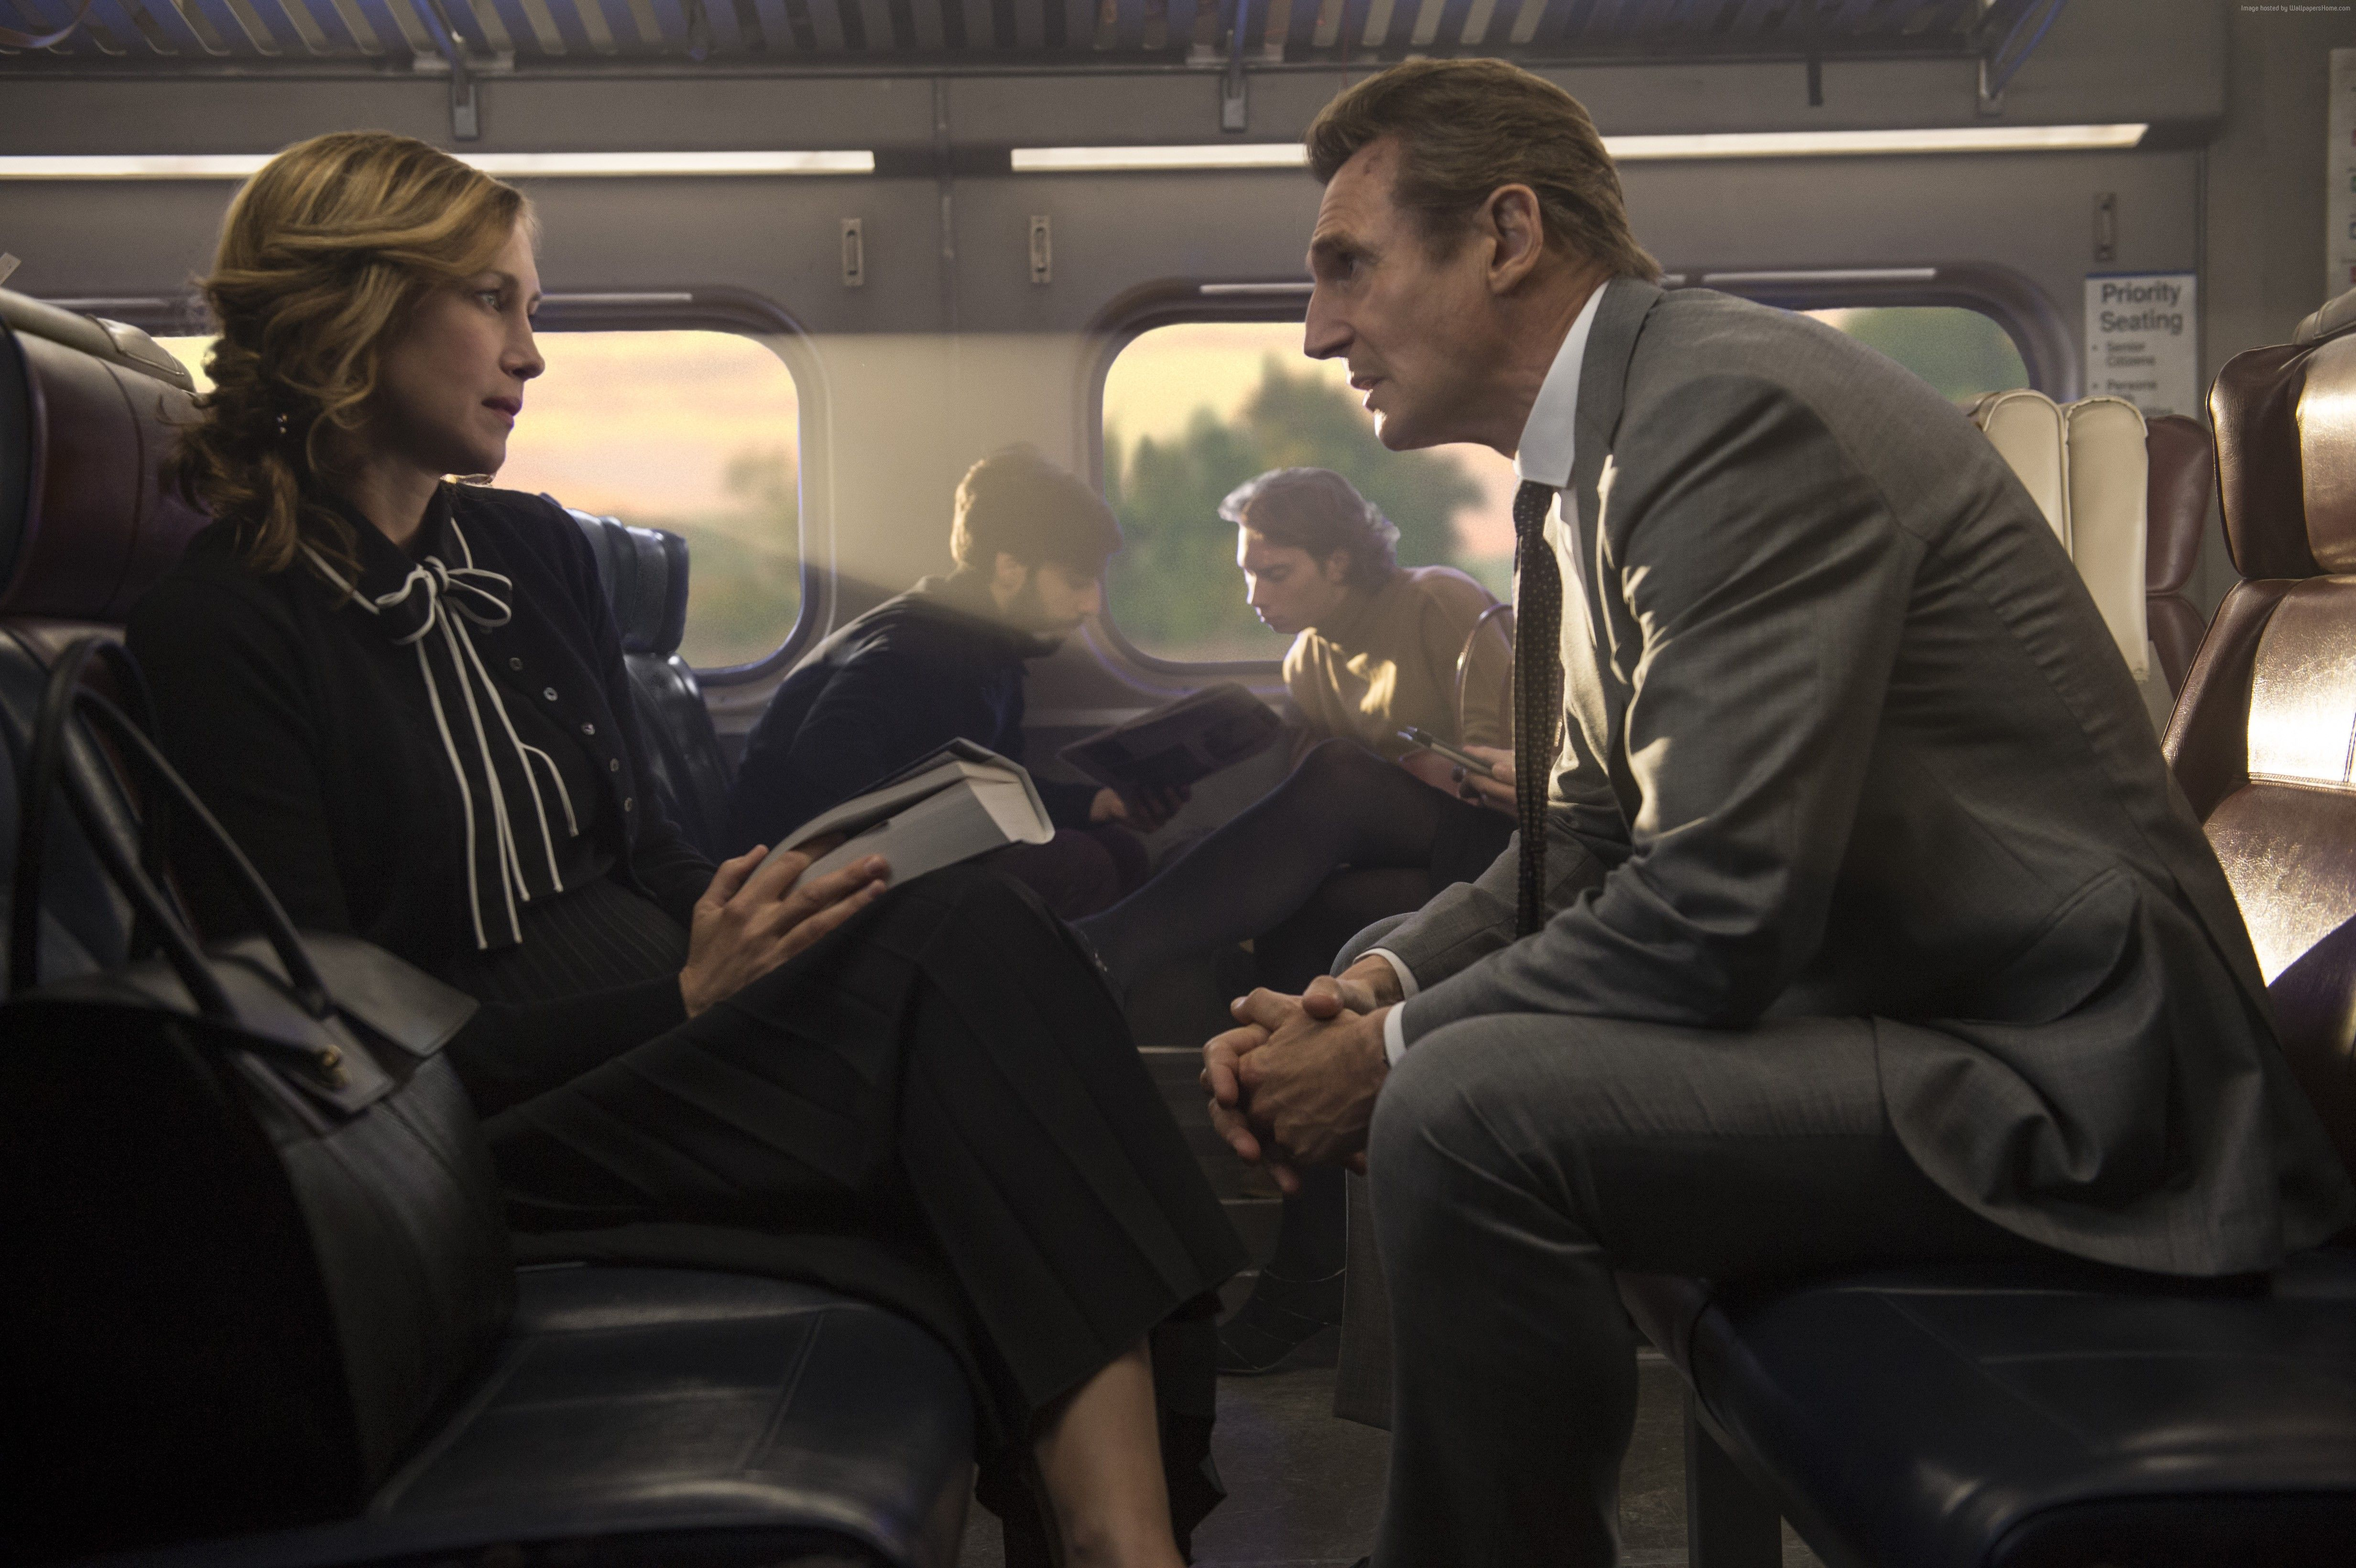 Wallpaper The Commuter, Vera Farmiga, Liam Neeson, 4k, Movies #16270